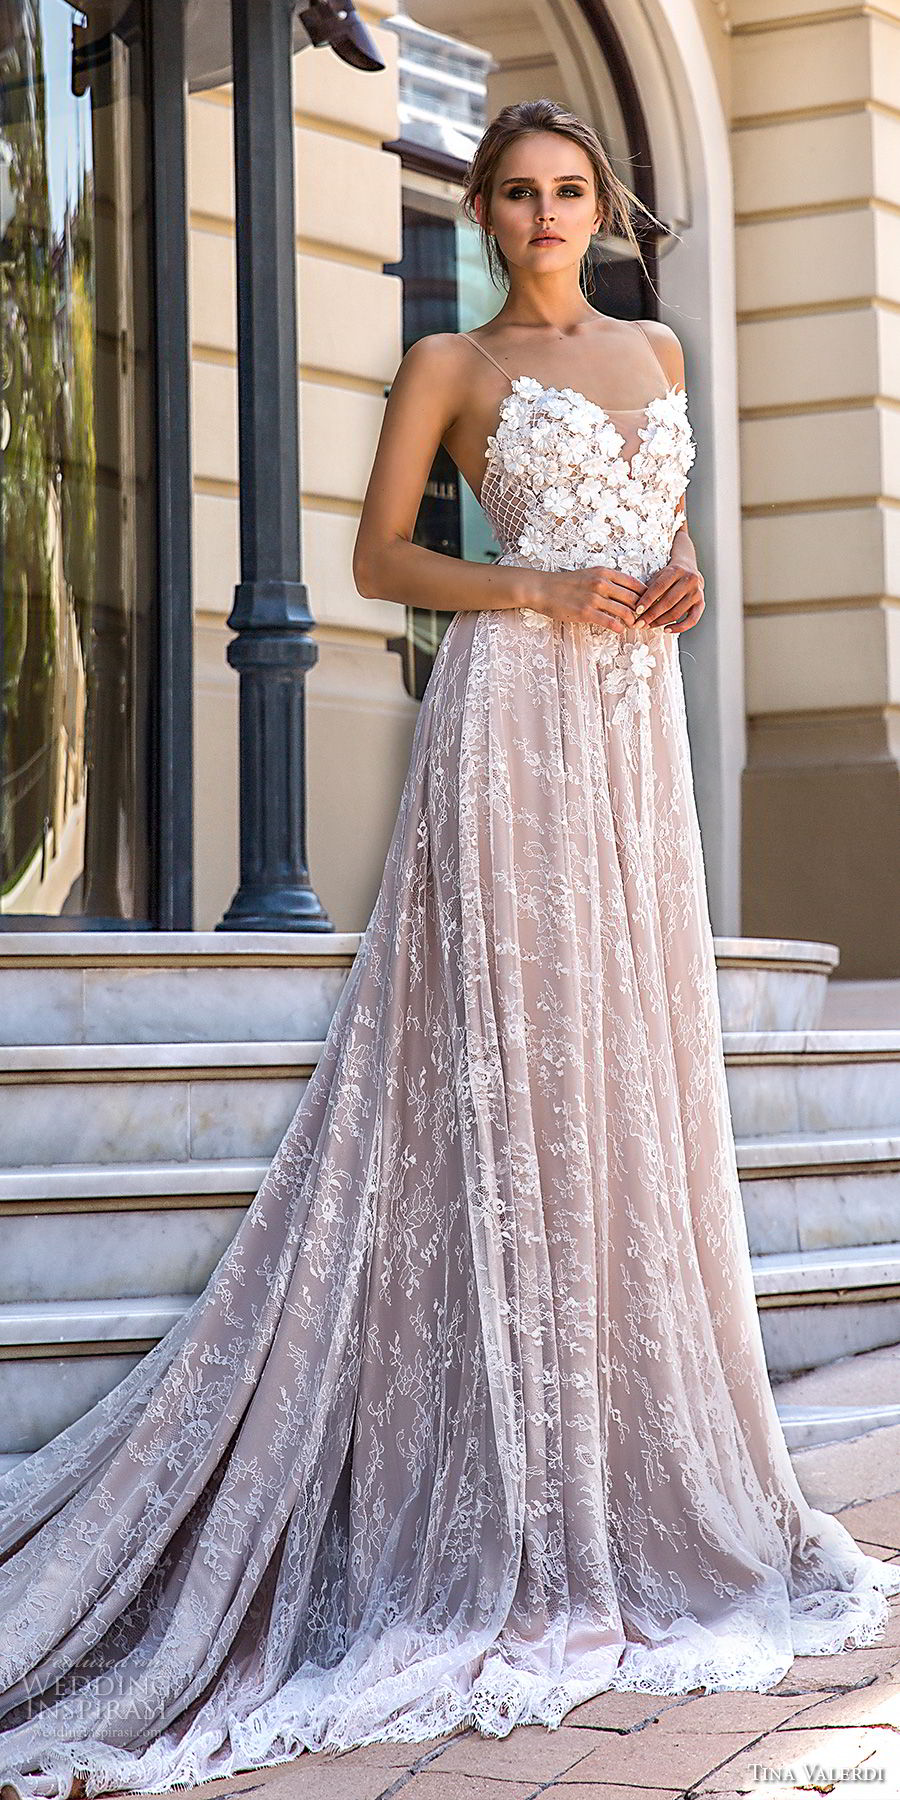 tina valerdi 2019 bridal spaghetti strap sweetheart neckline full embellishment romantic blush modified a line wedding dress open back chapel train (15) mv